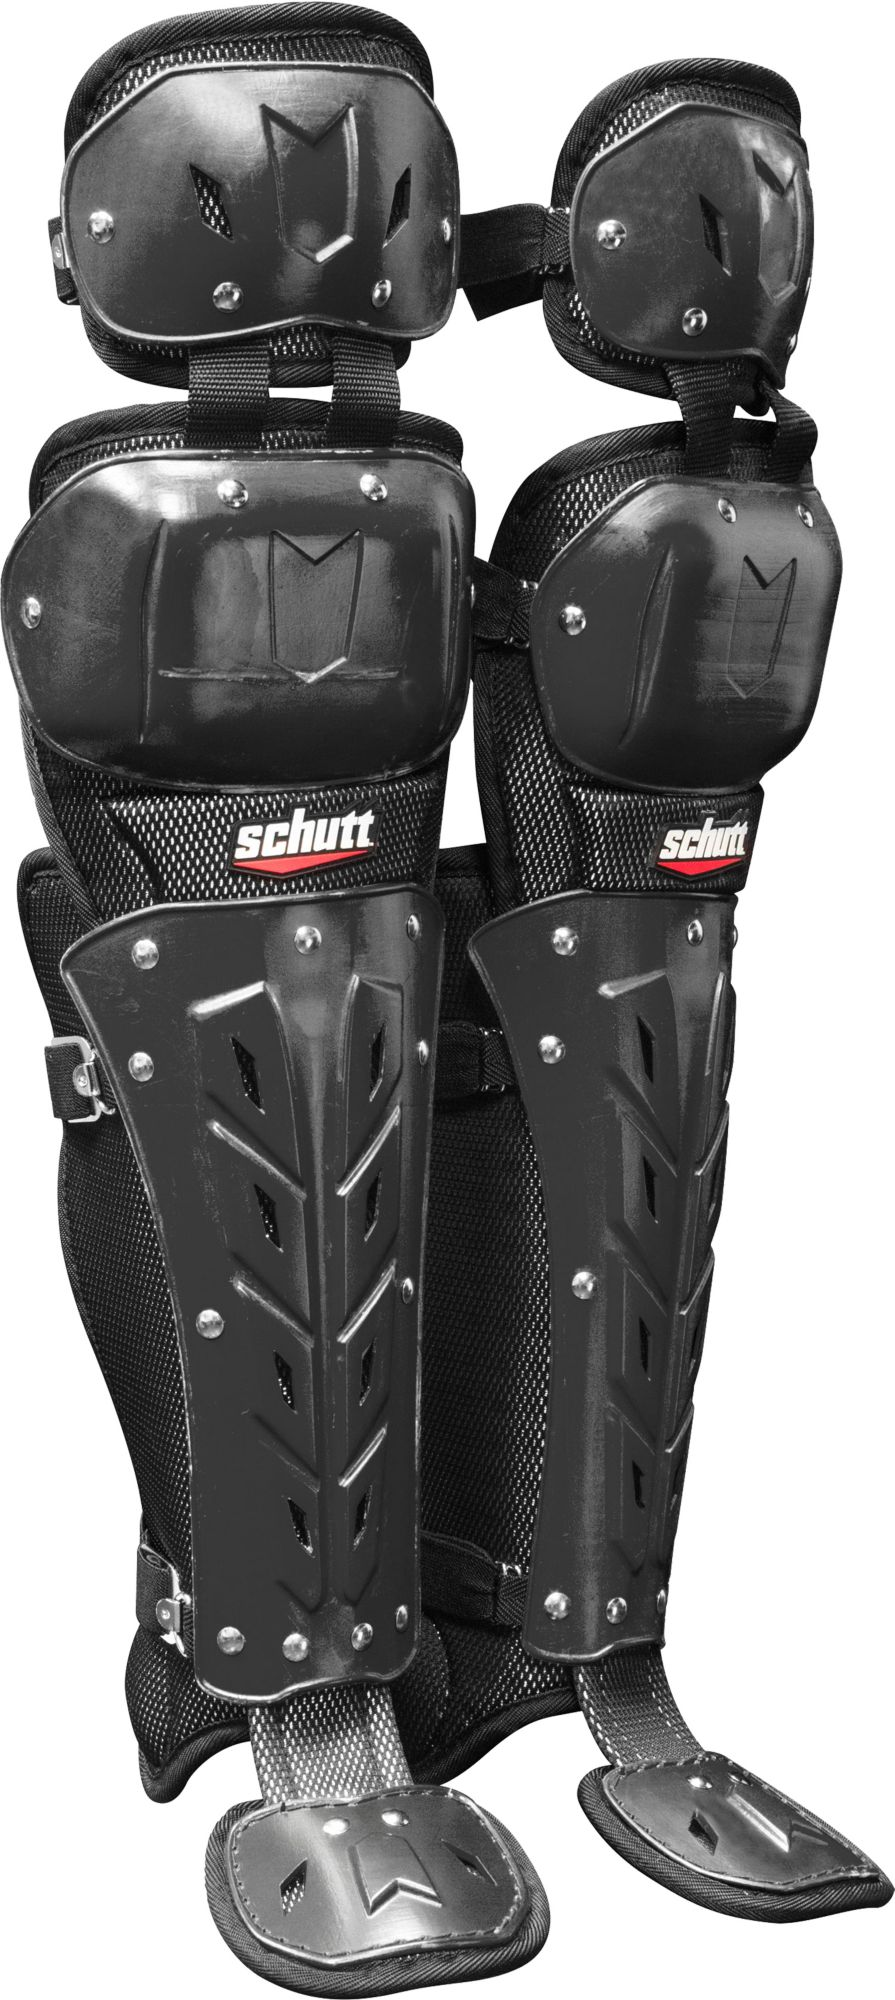 Schutt Air Maxx Scorpion Double Knee Catchers Leg Guards